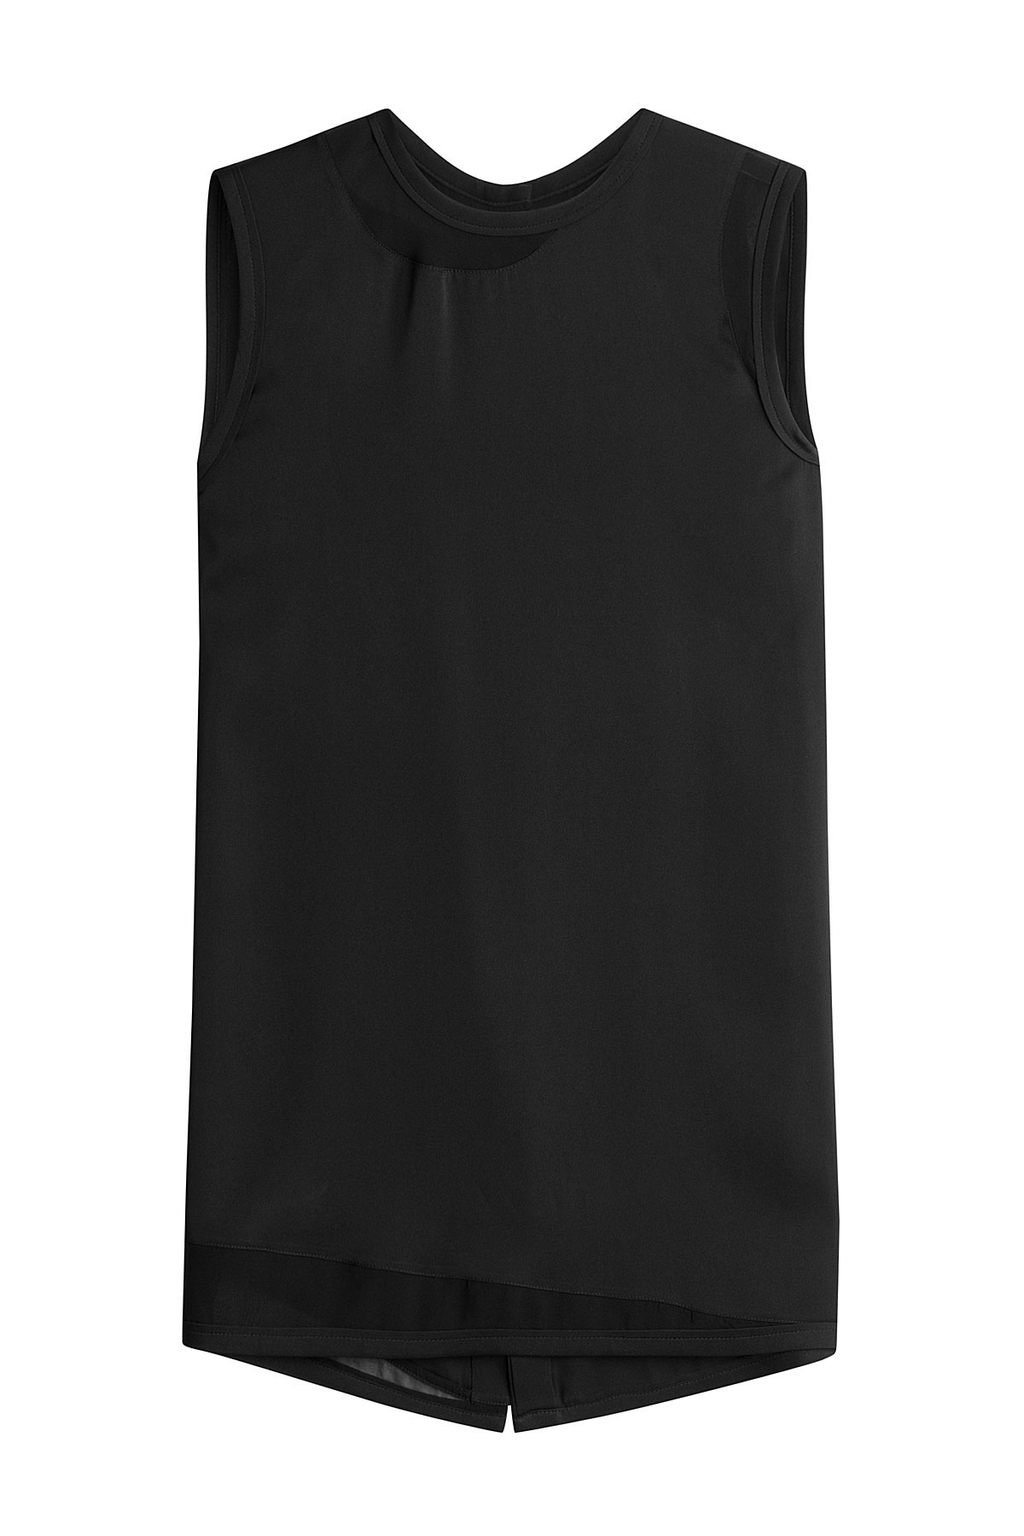 Sleeveless Silk Top Black - pattern: plain; sleeve style: sleeveless; predominant colour: black; occasions: casual; length: standard; style: top; fibres: silk - 100%; fit: body skimming; neckline: crew; sleeve length: sleeveless; texture group: silky - light; pattern type: fabric; season: s/s 2016; wardrobe: basic